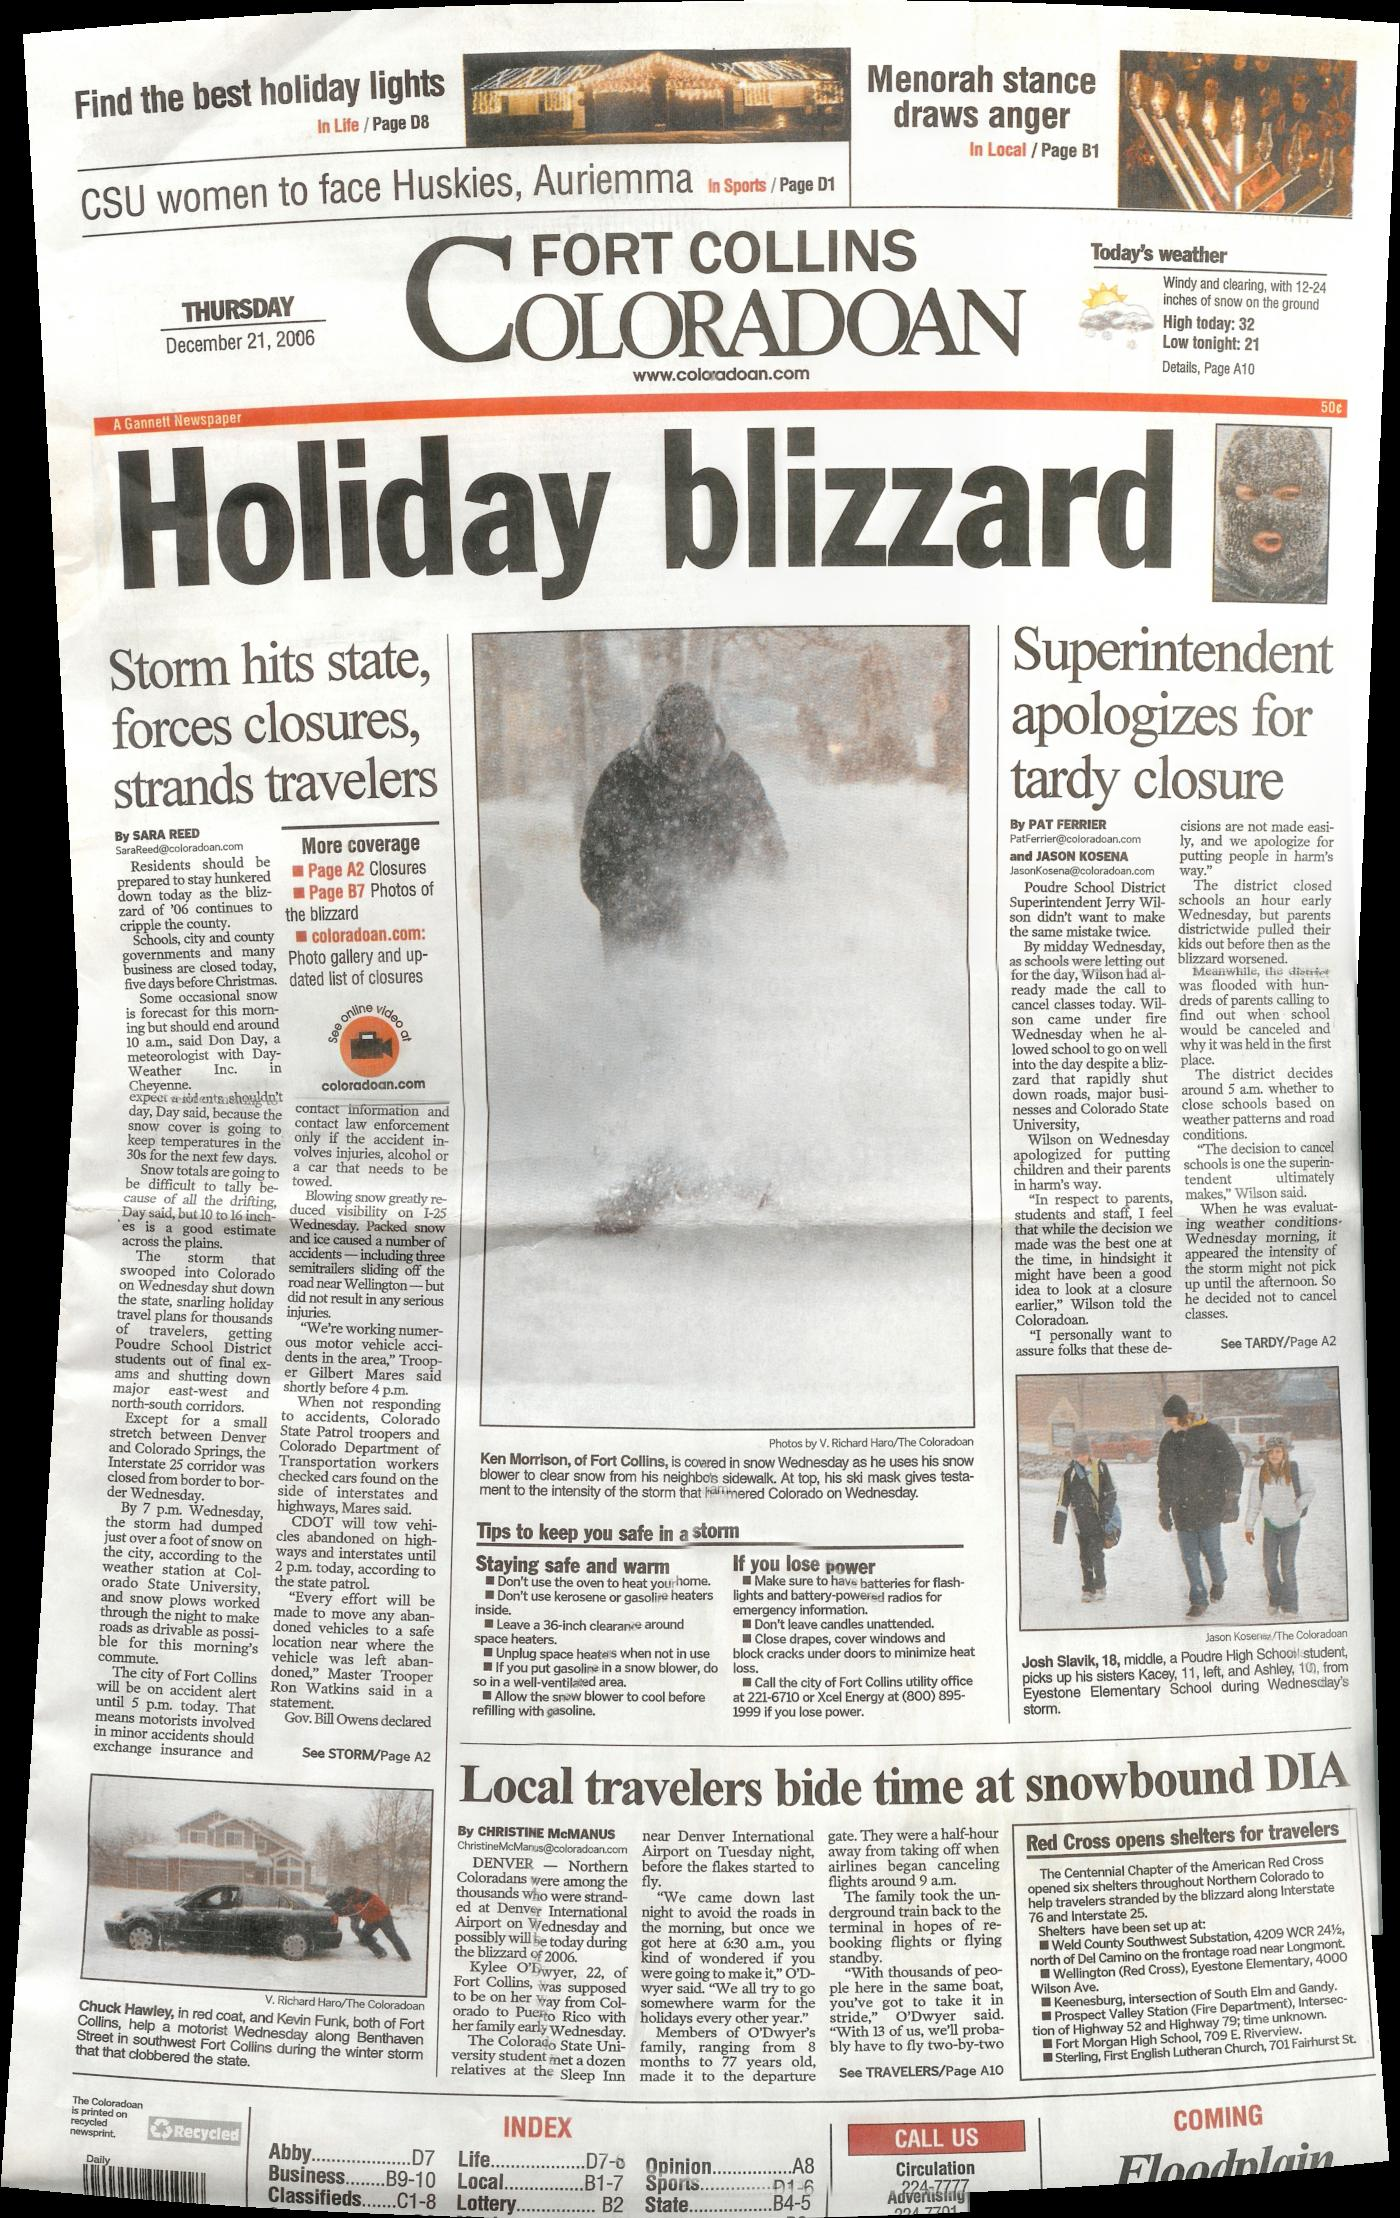 Fort Collins Blizzard of 2006